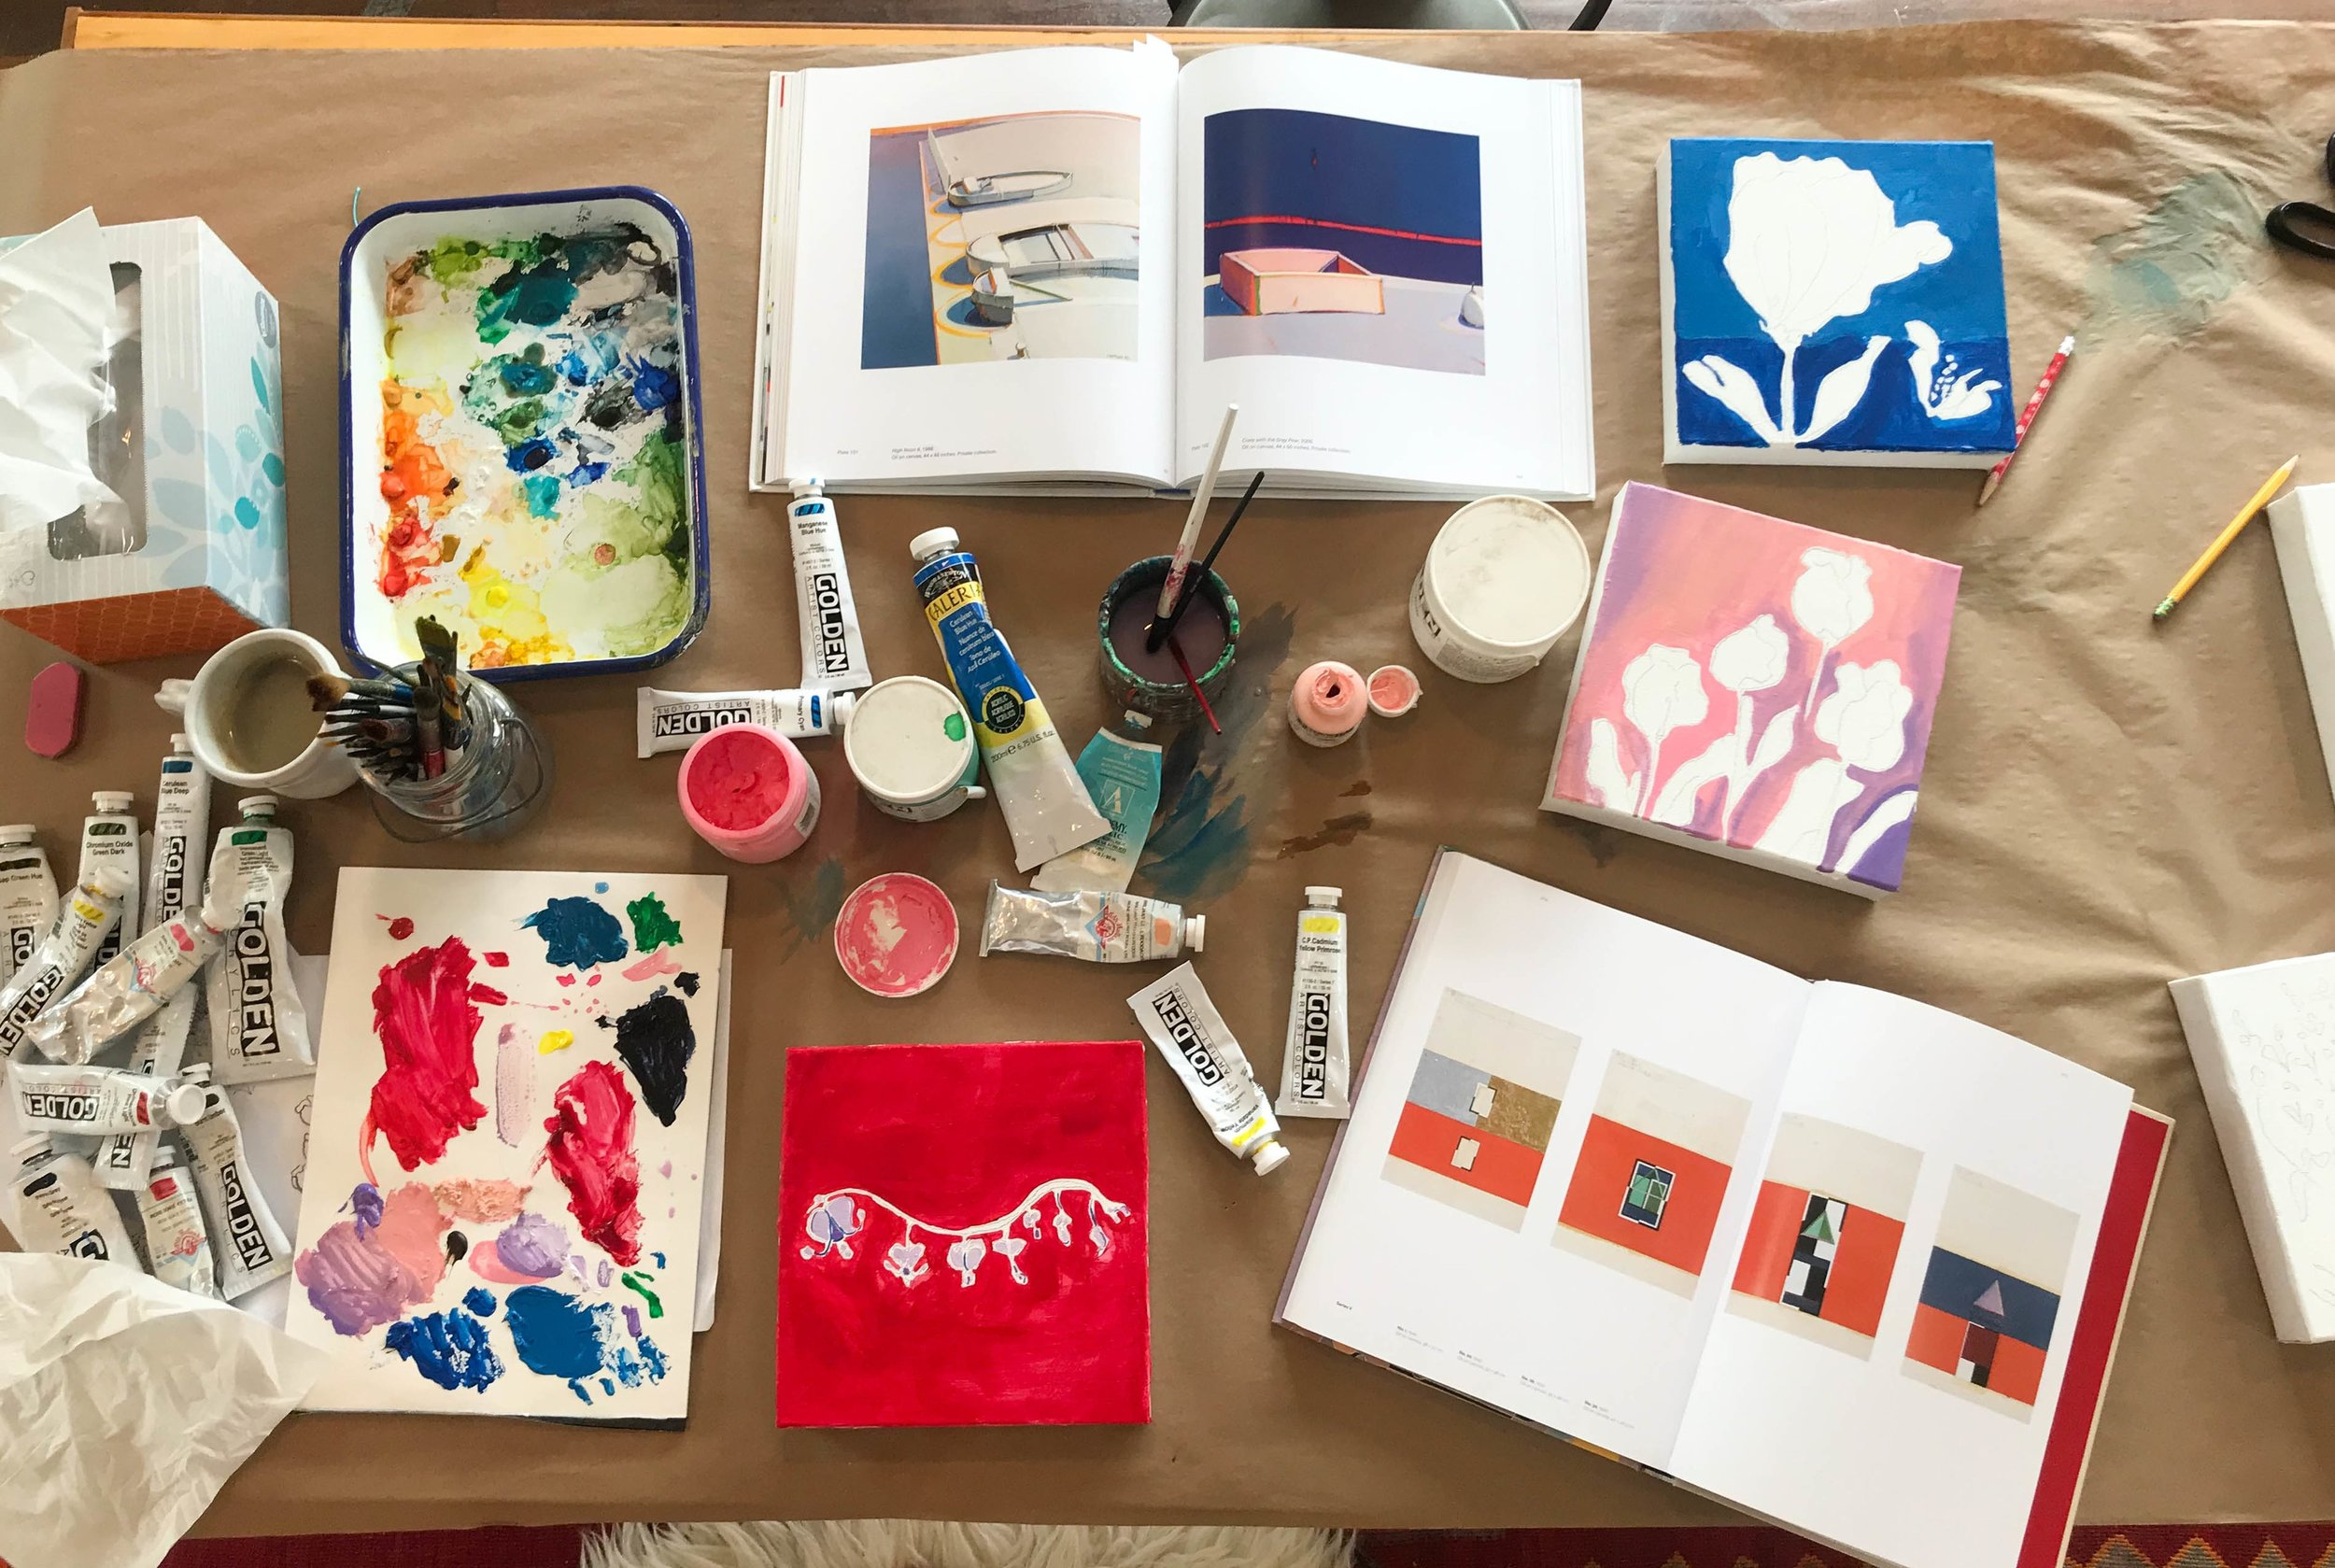 Color palette influenced by  Raimonds Staprans  (top book) and  Hilma af Klint  (lower right book).